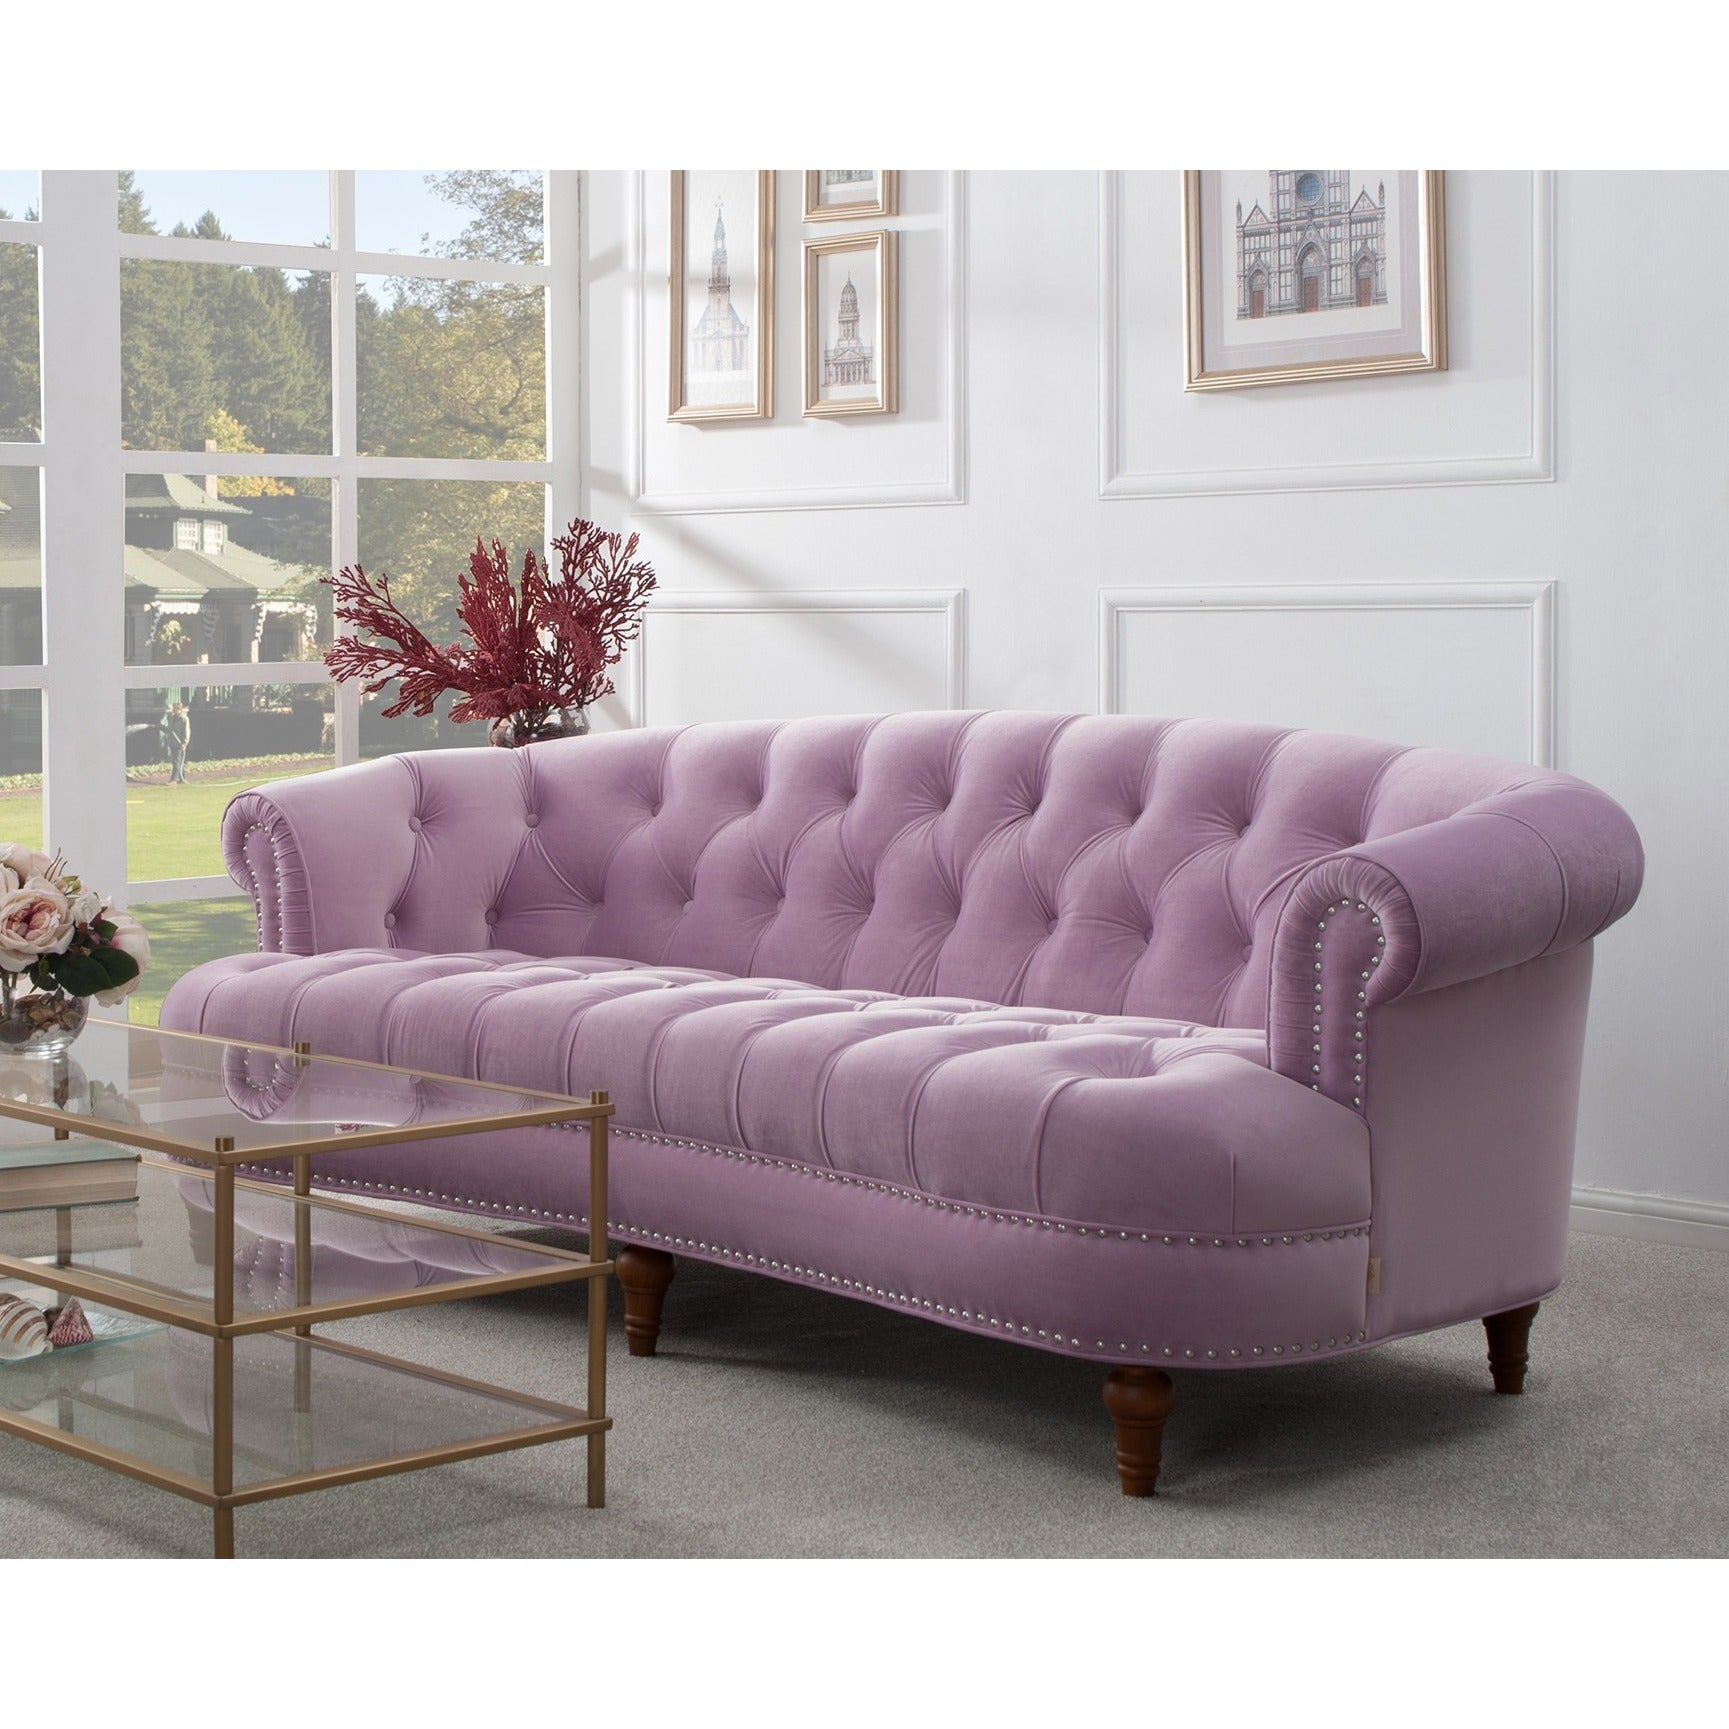 Shop Jennifer Taylor La Rosa Chesterfield Sofa   On Sale   Free Shipping  Today   Overstock.com   10046417